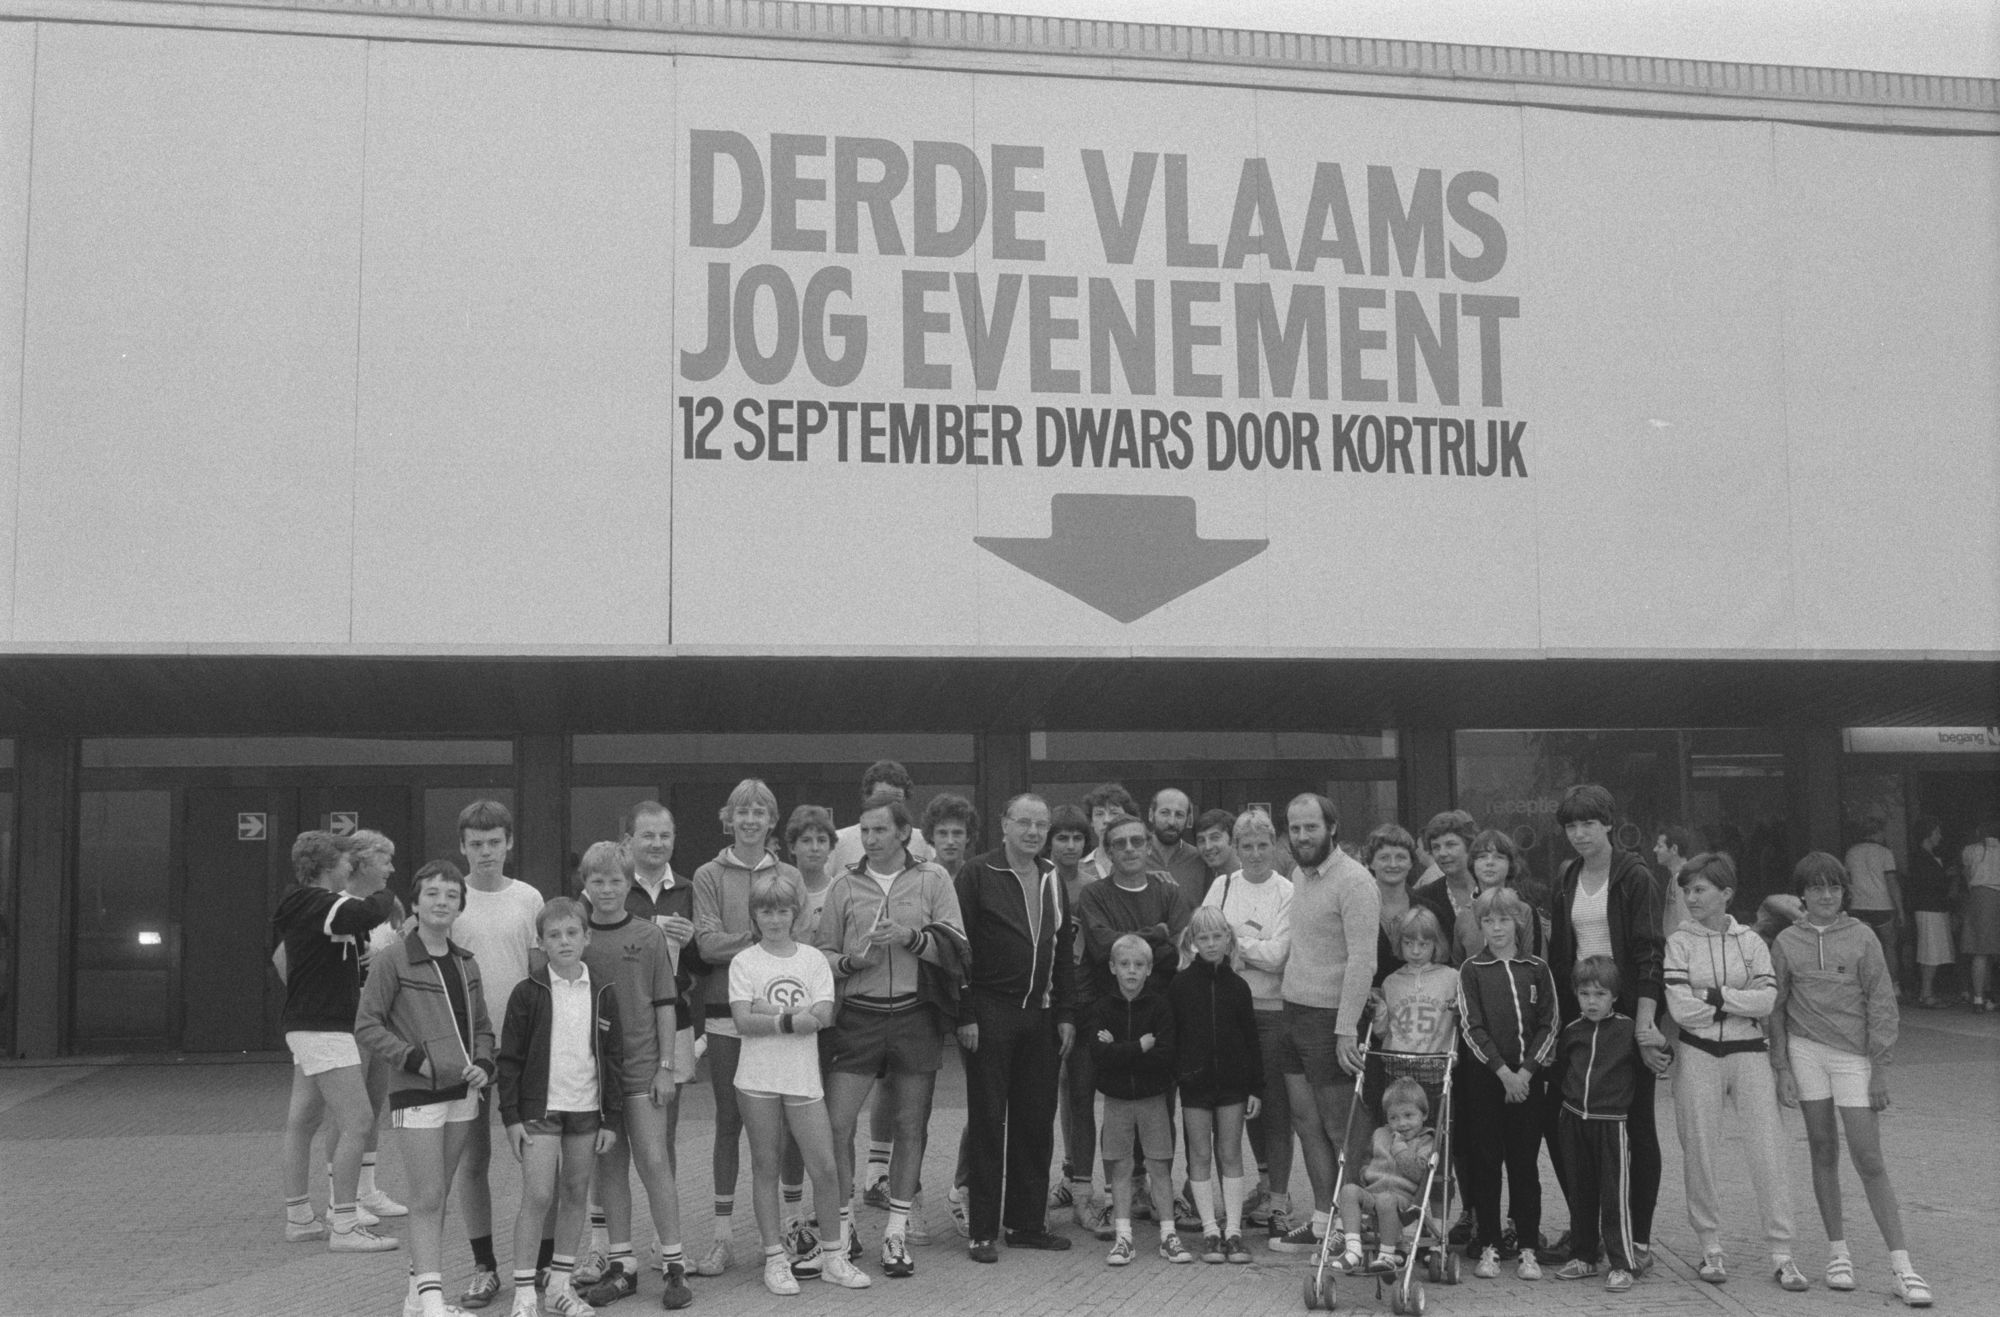 Derde Vlaams jogging evennement